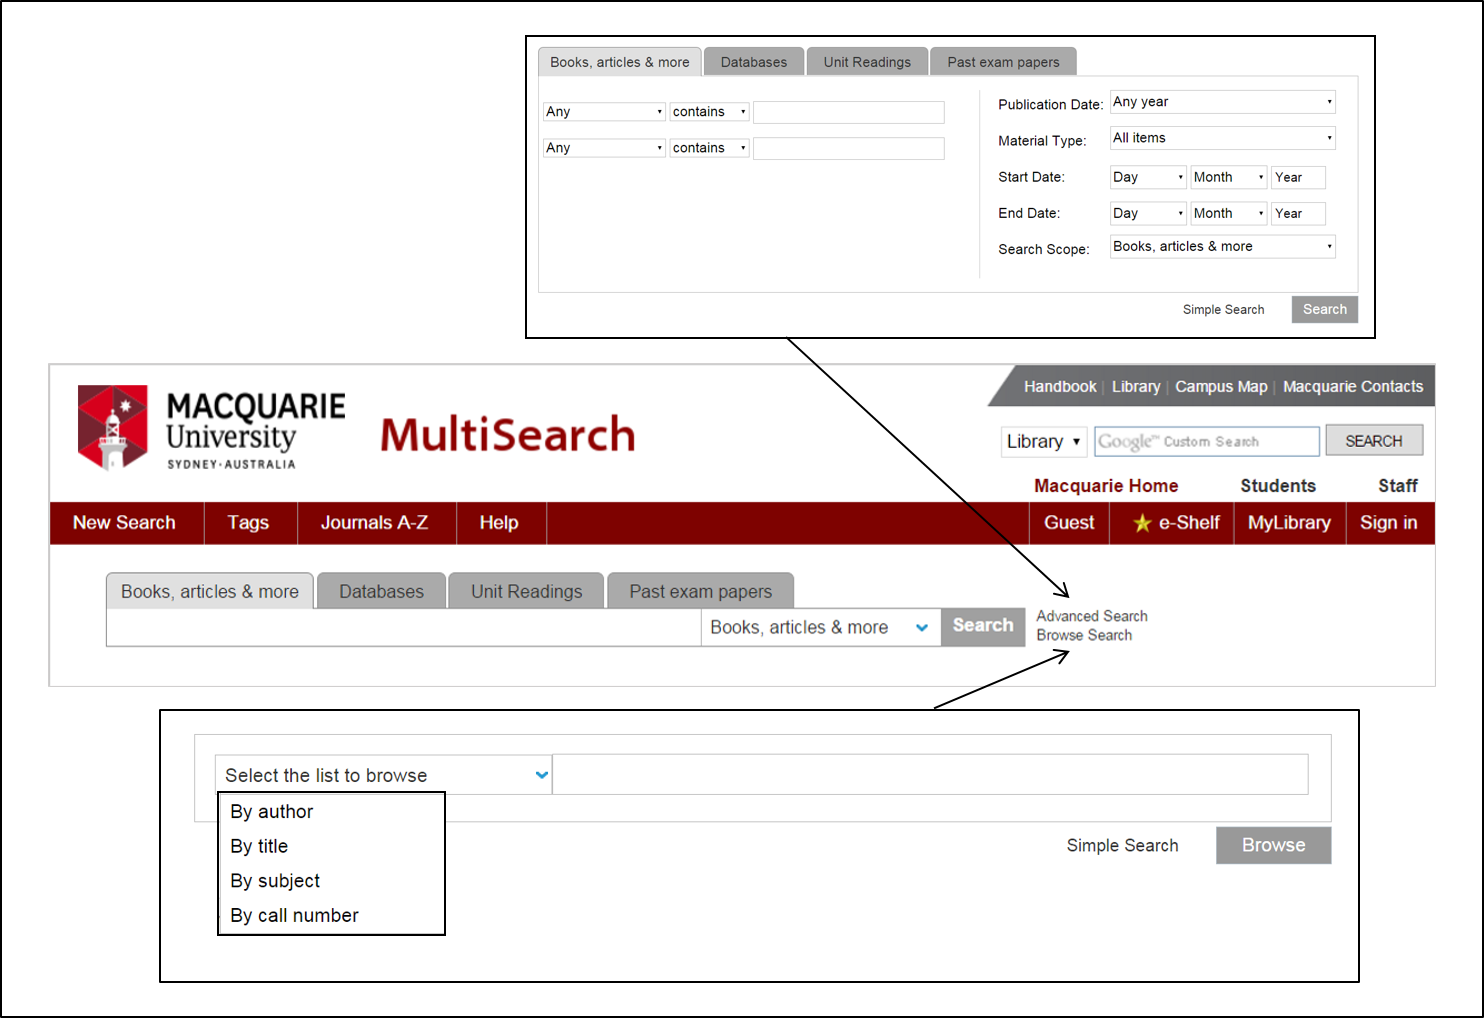 MultiSearch screenshot showing advanced and browse search options